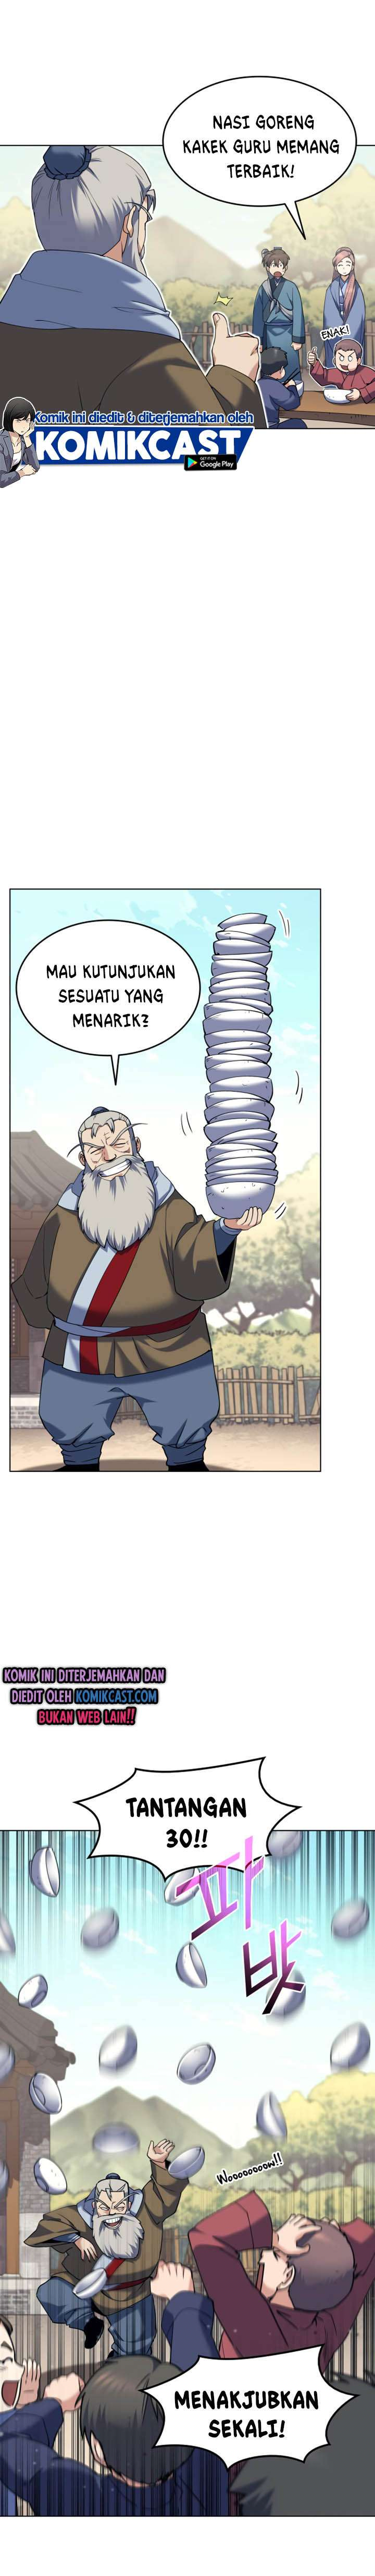 Tale of a Scribe Who Retires to the Countryside Chapter 53 Bahasa Indonesia page 43